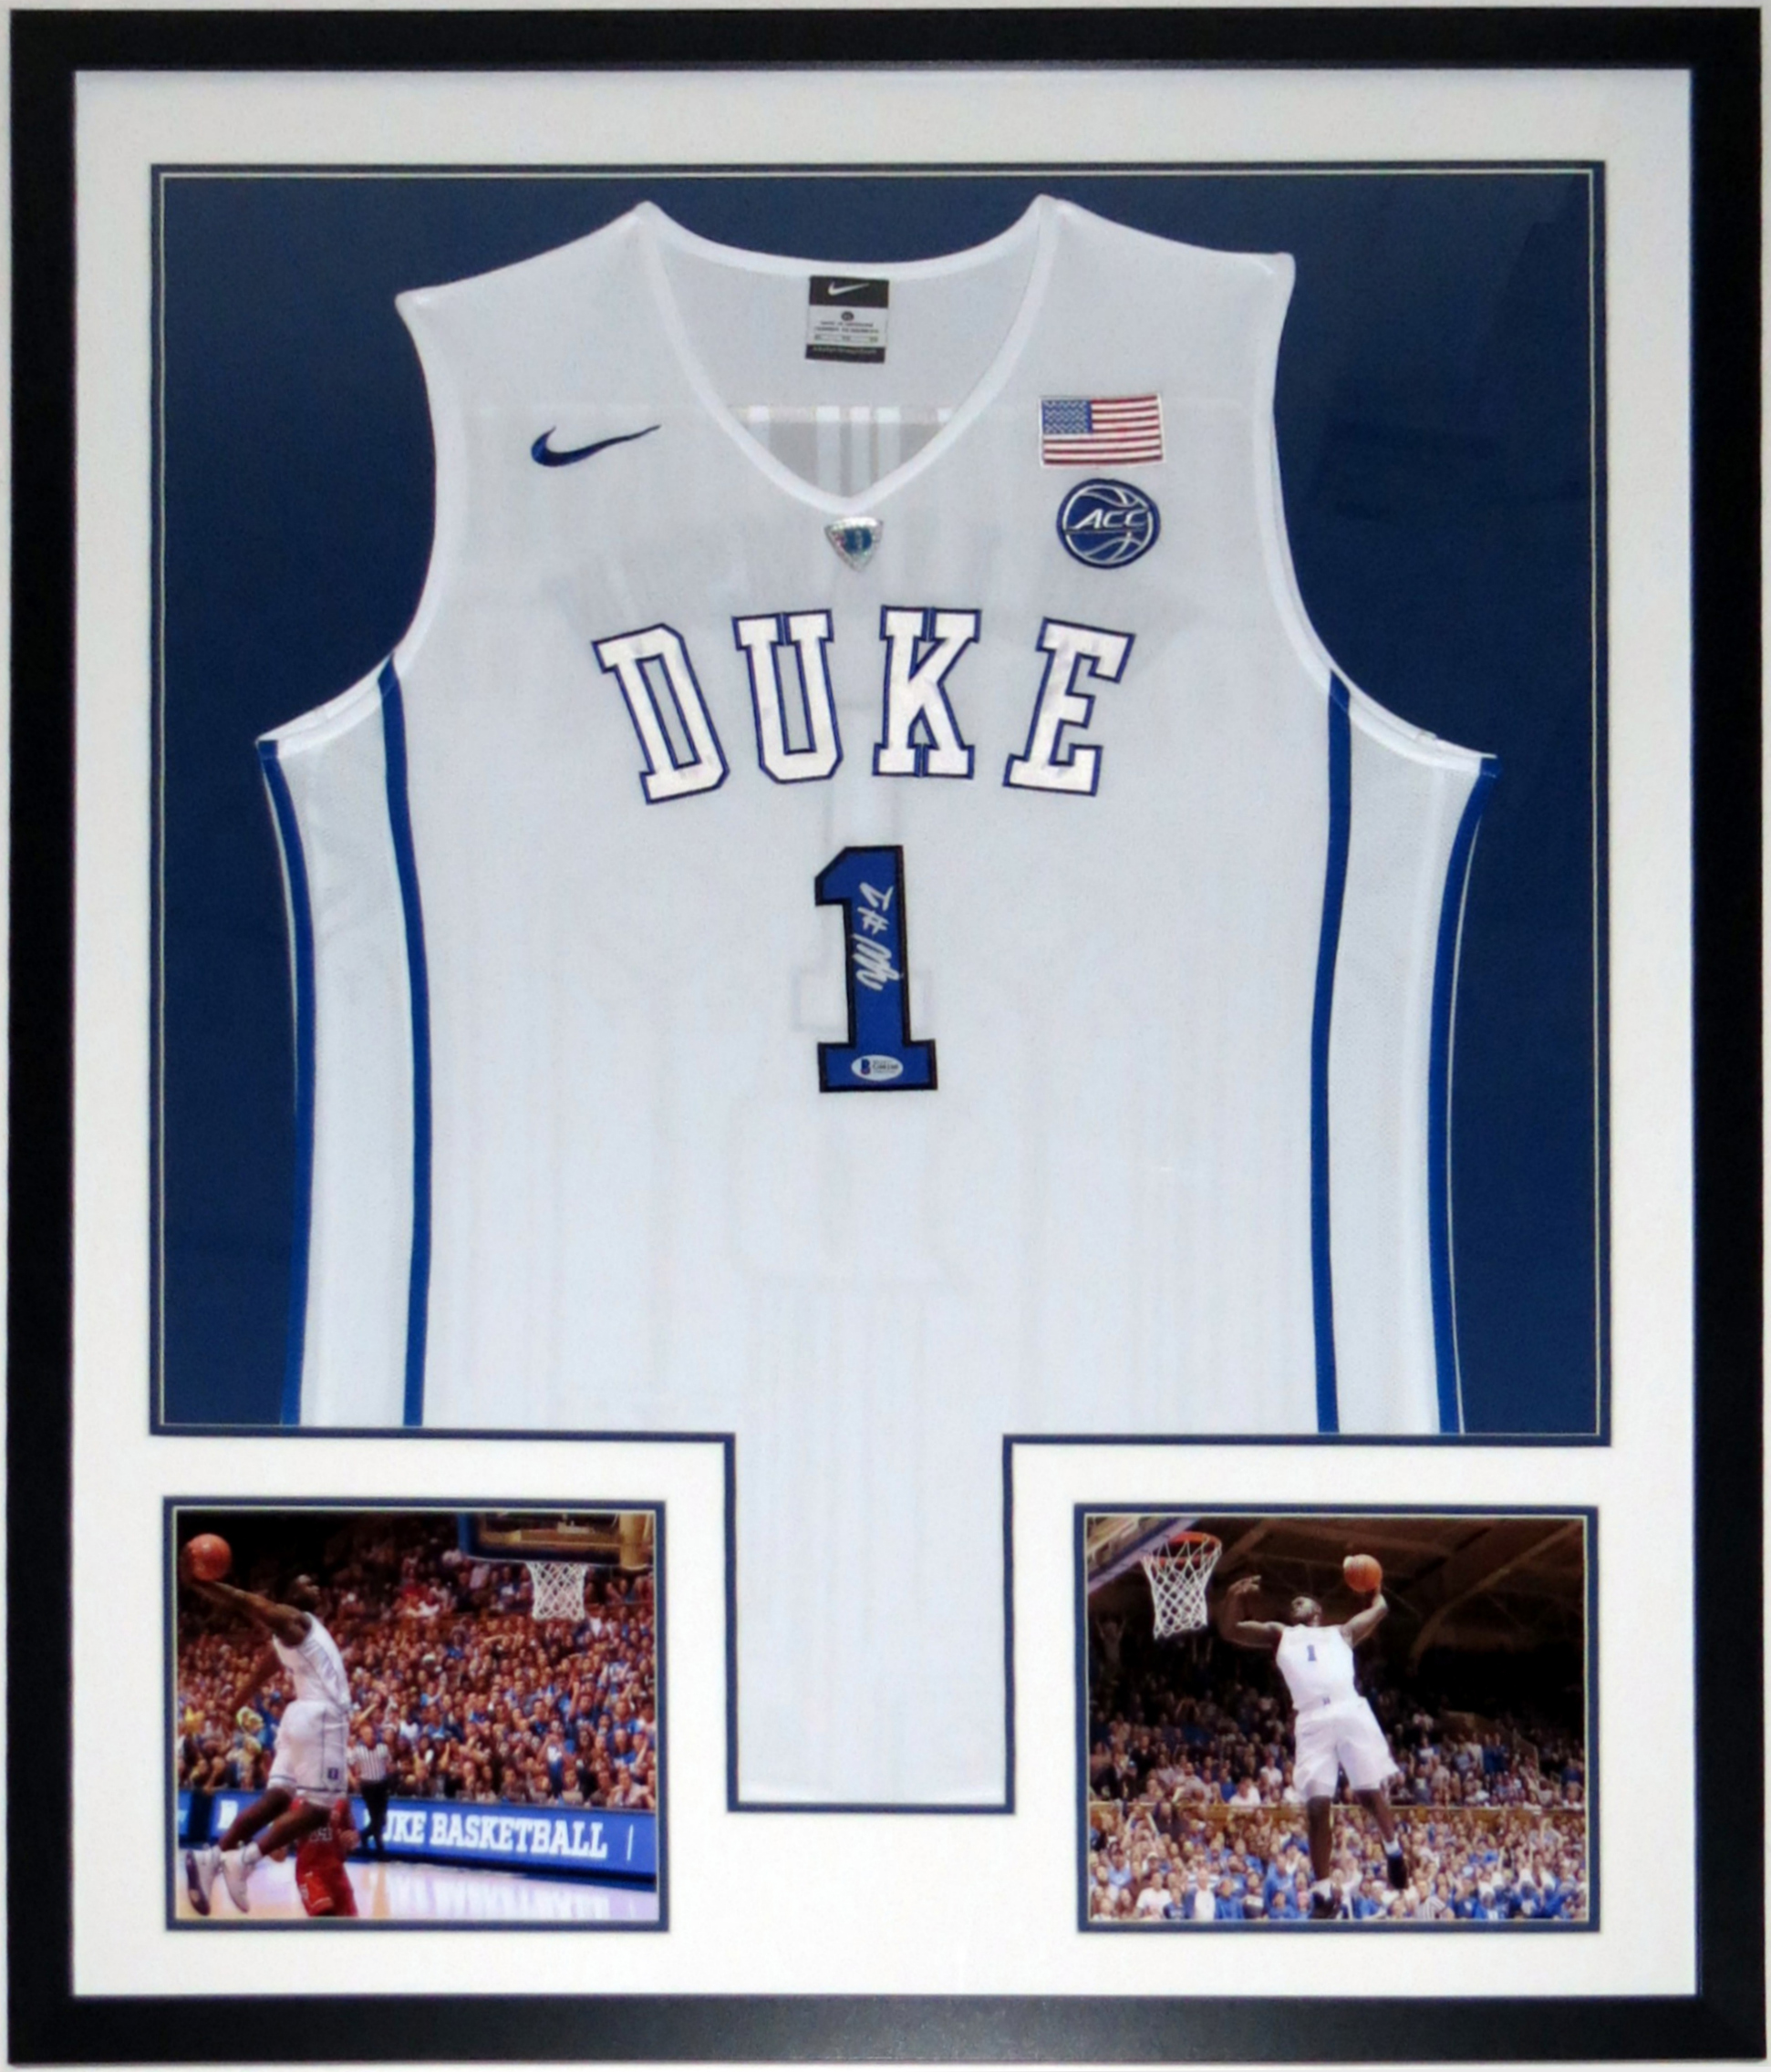 Zion Williamson Autographed Nike Duke Blue Devils Jersey -Beckett Authentication Services BAS COA - Professionally Framed & 2 8x10 Photo